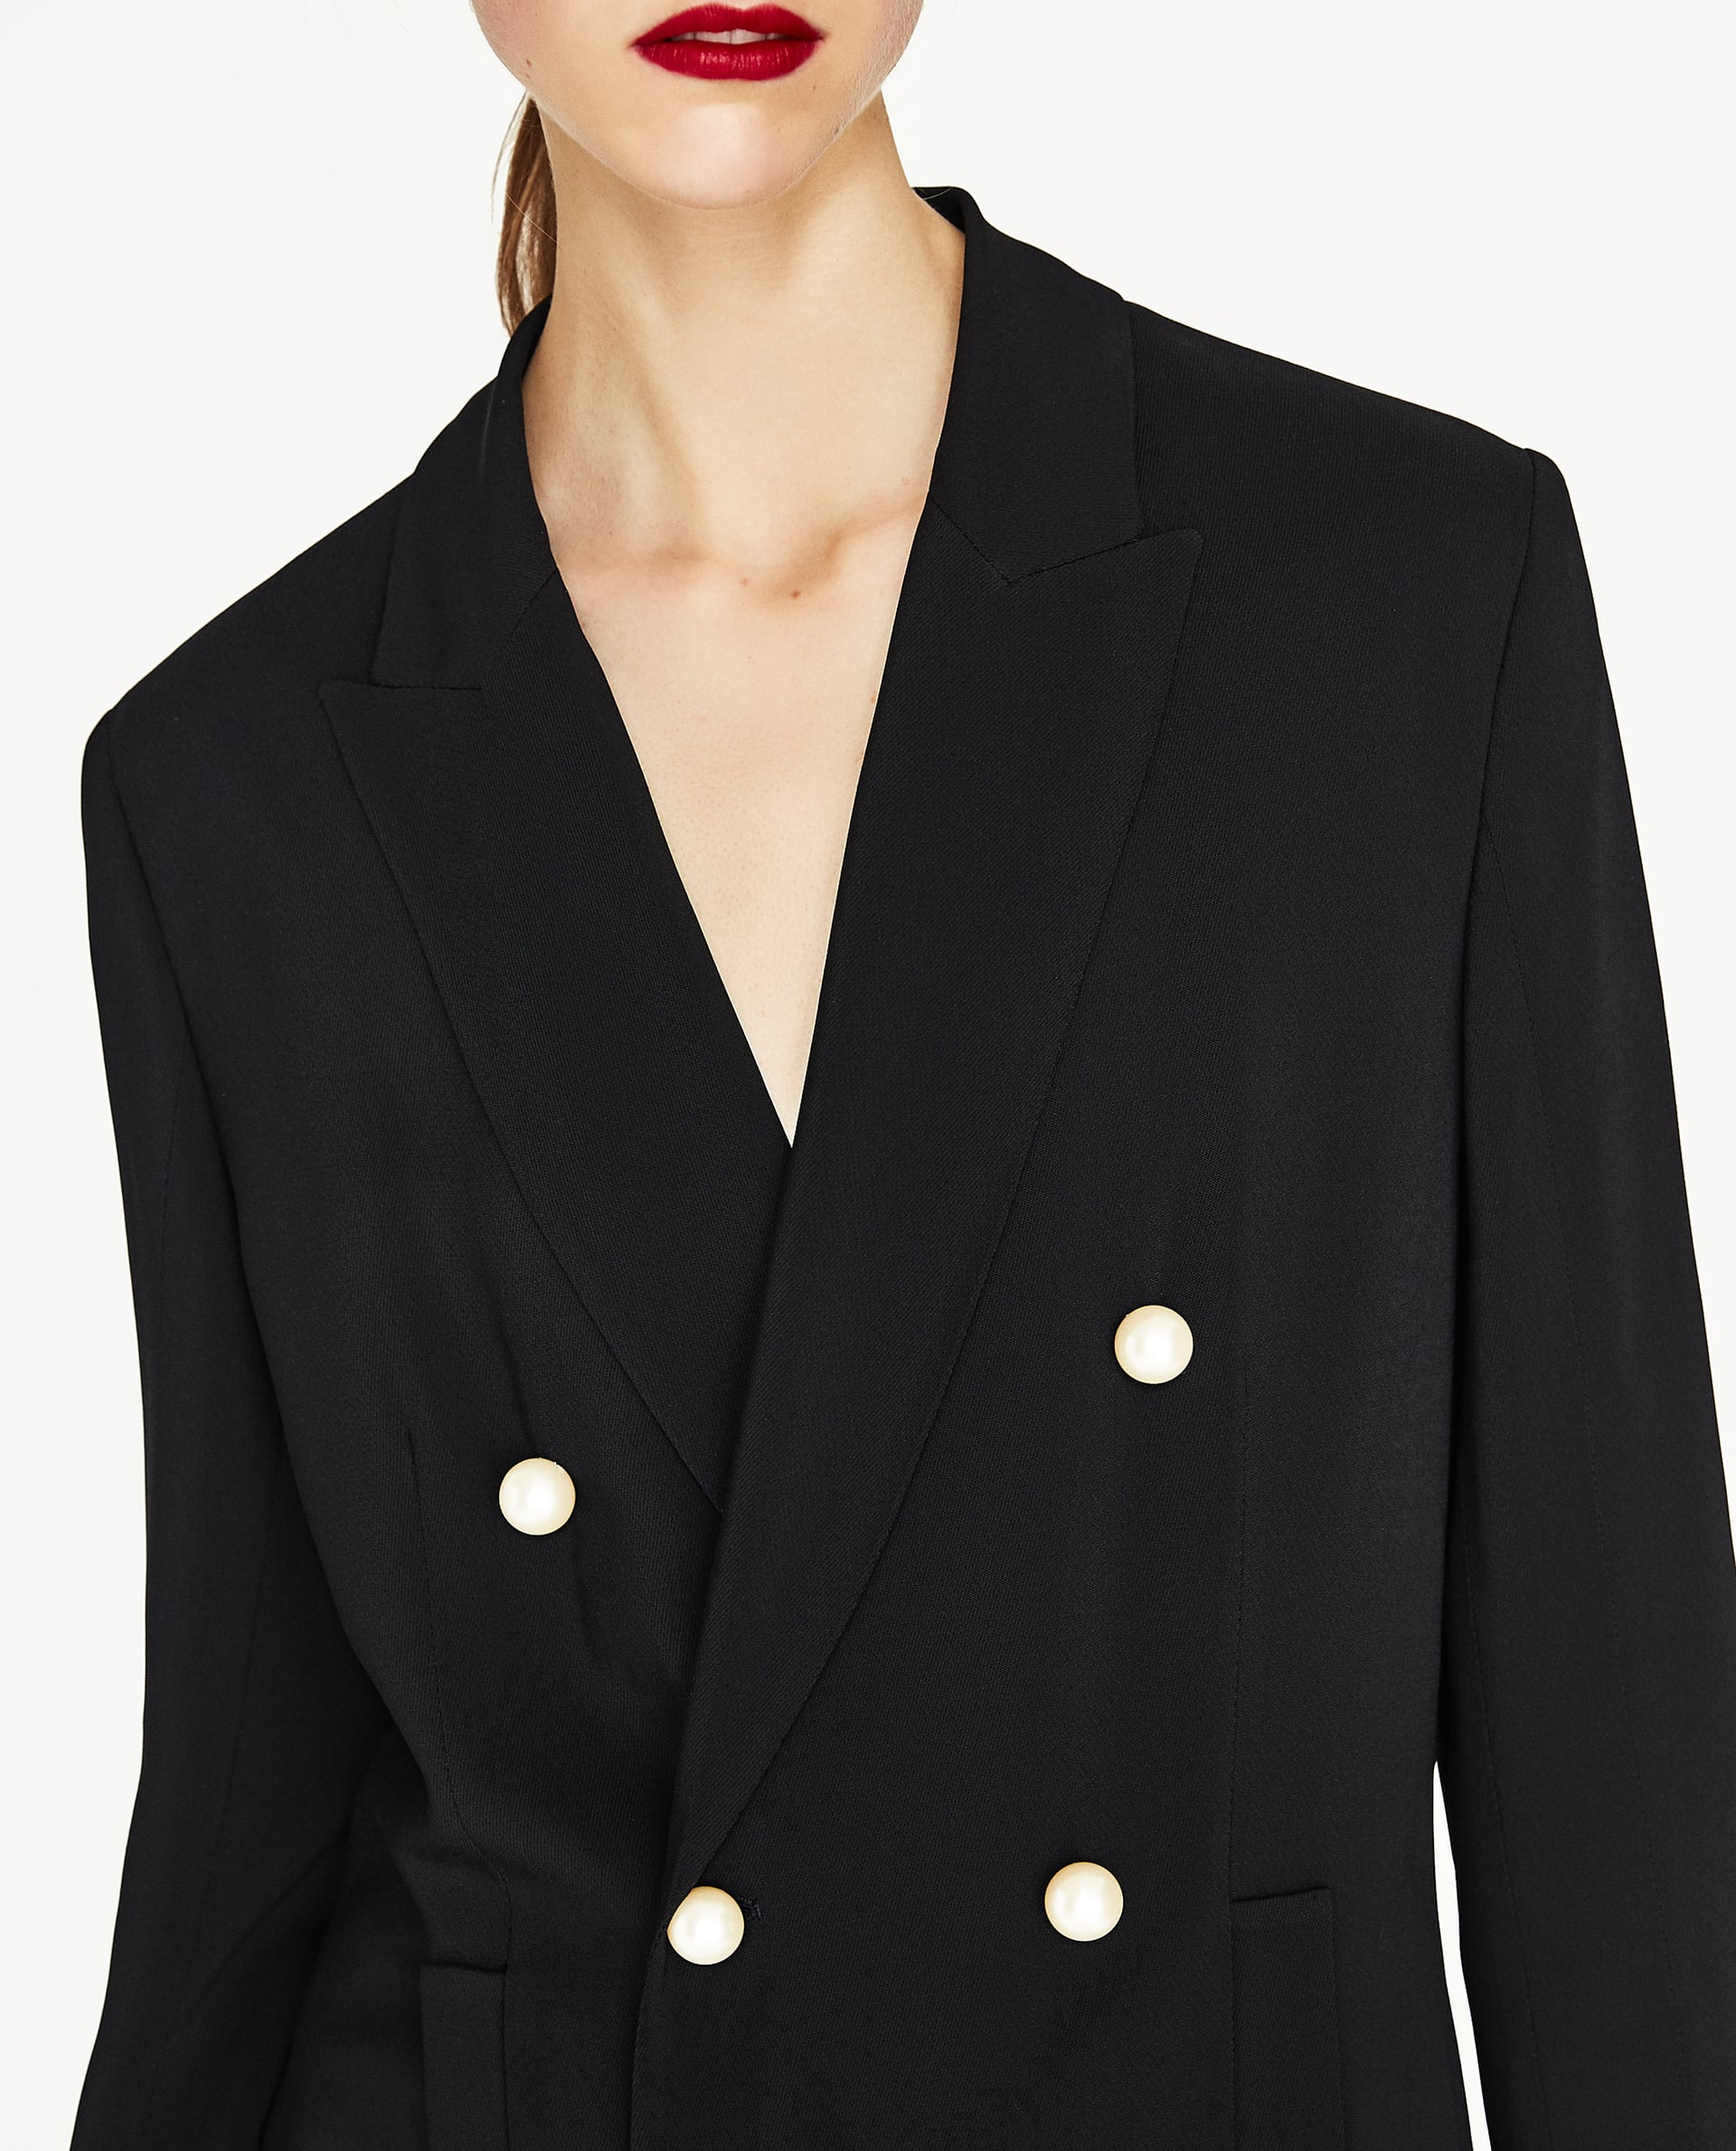 2626c40e DOUBLE BREASTED JACKET WITH PEARL BEADS